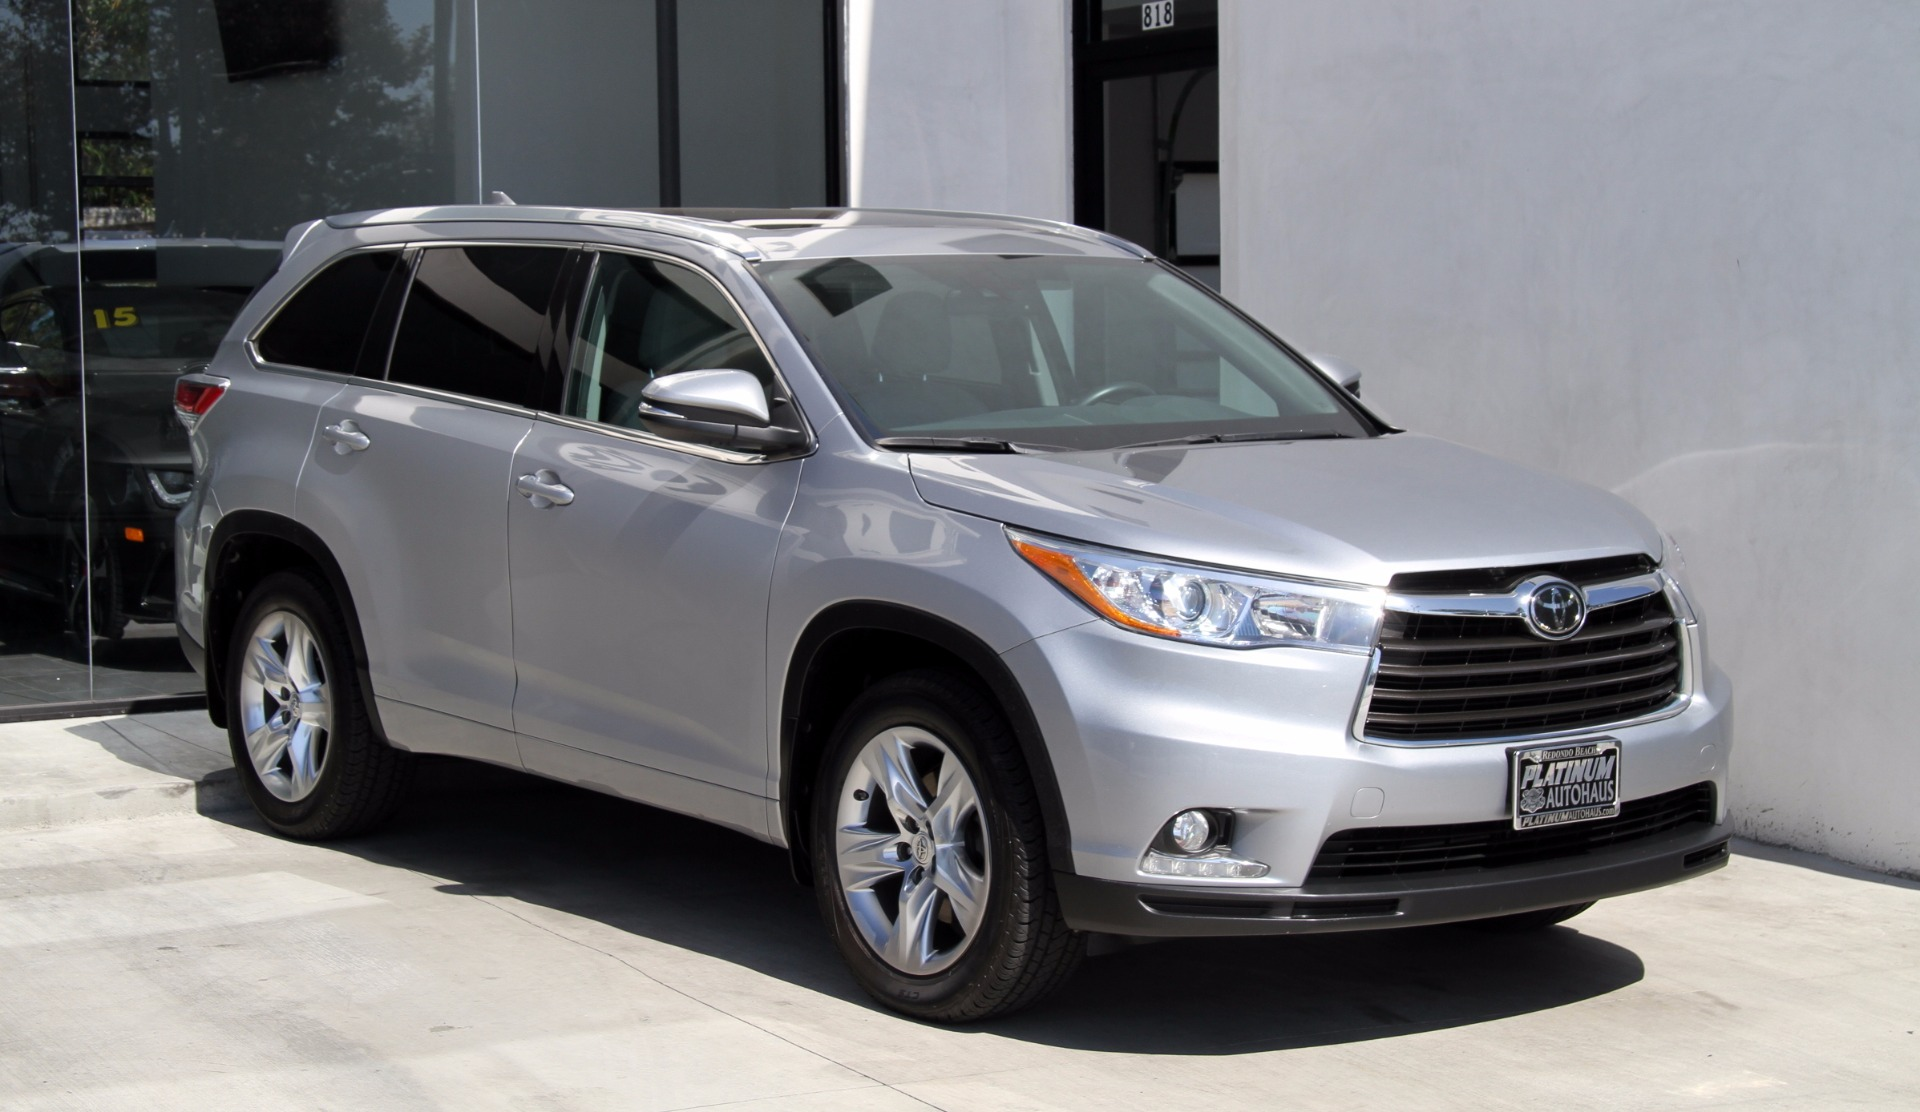 2015 toyota highlander limited stock 5829b for sale near redondo beach ca ca toyota dealer. Black Bedroom Furniture Sets. Home Design Ideas